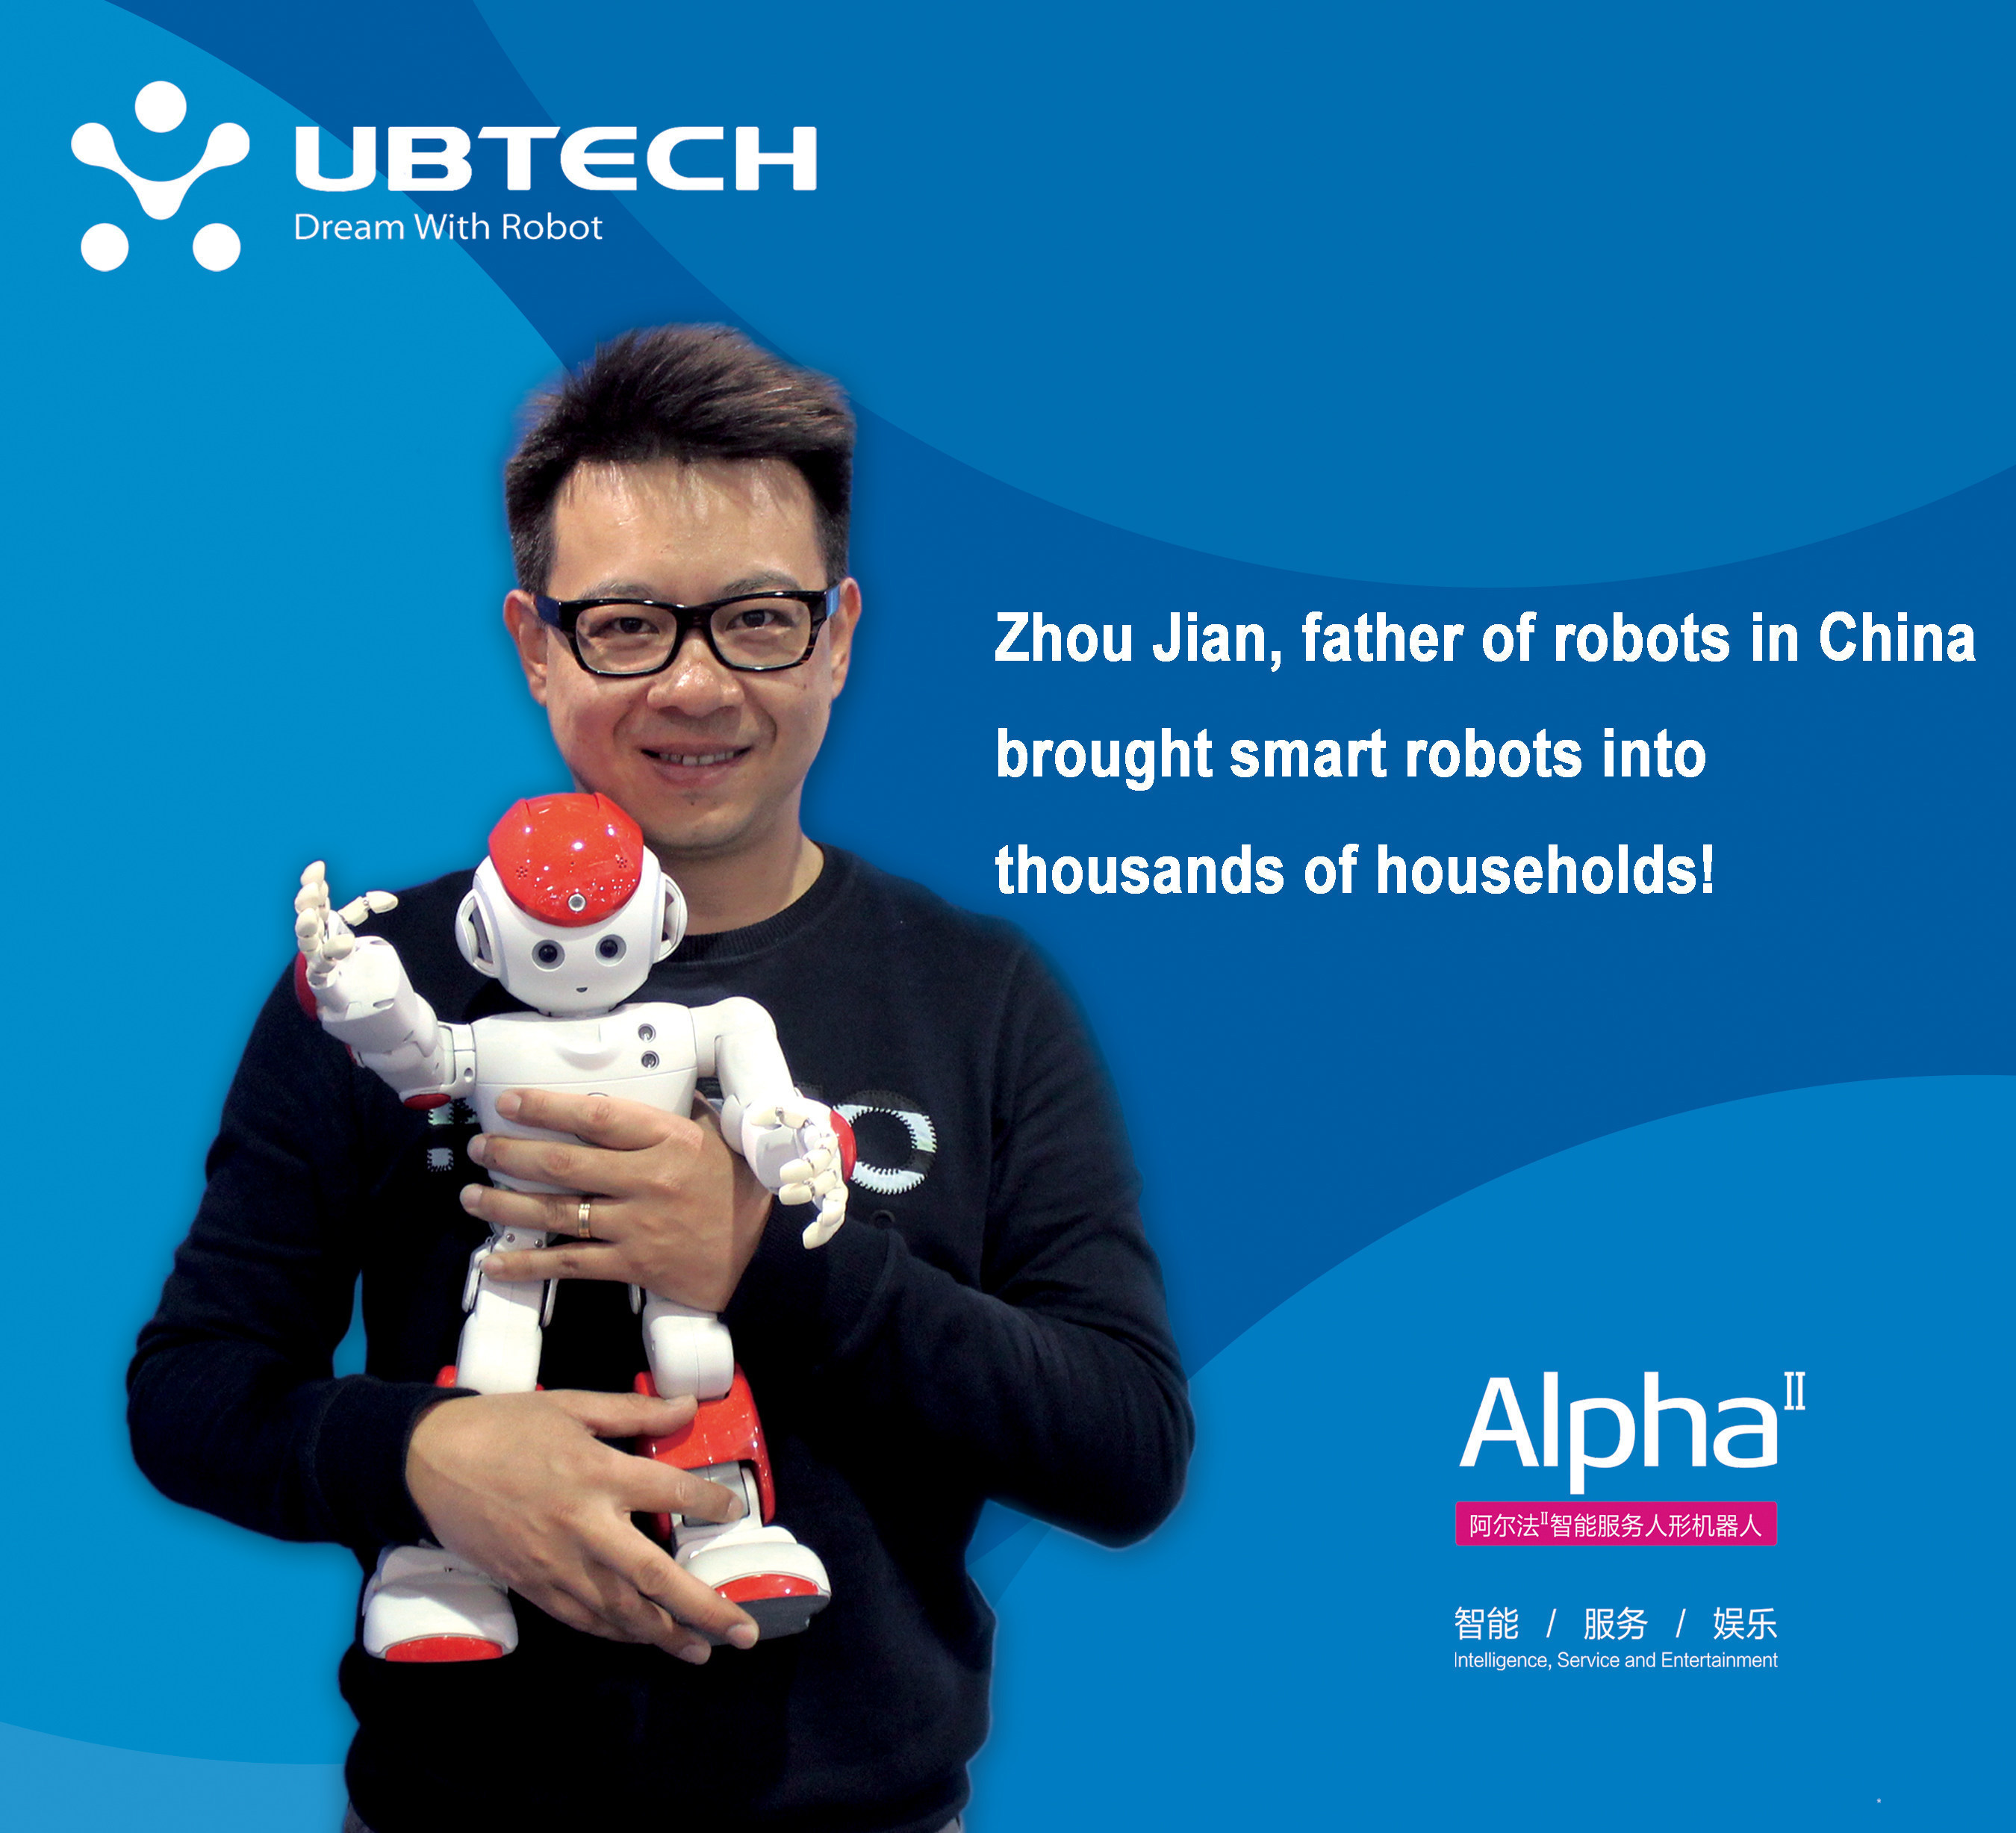 Zhou Jian, father of robots in China, brought smart robots into thousands of households